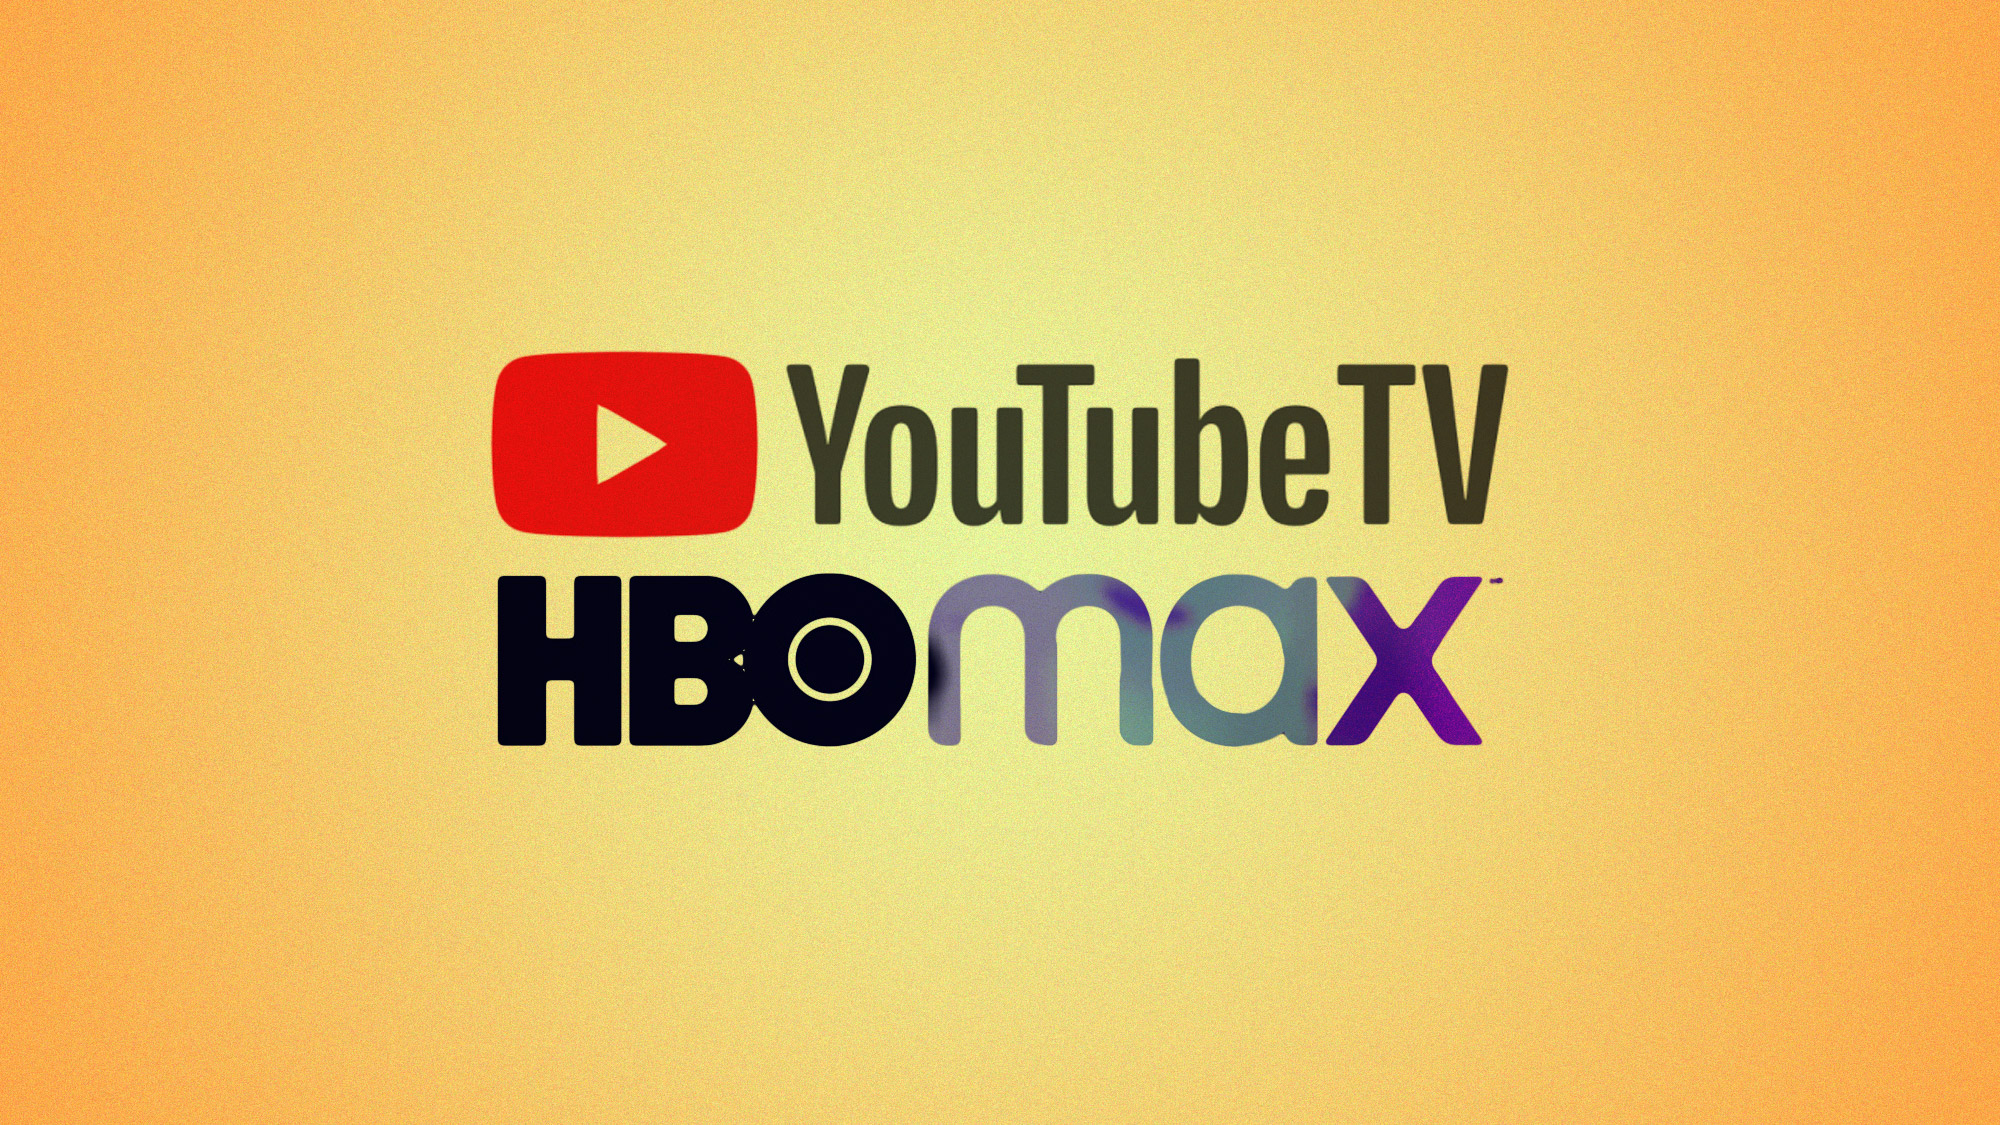 HBO Max is going to be a major reason to get YouTube TV | Tom's Guide